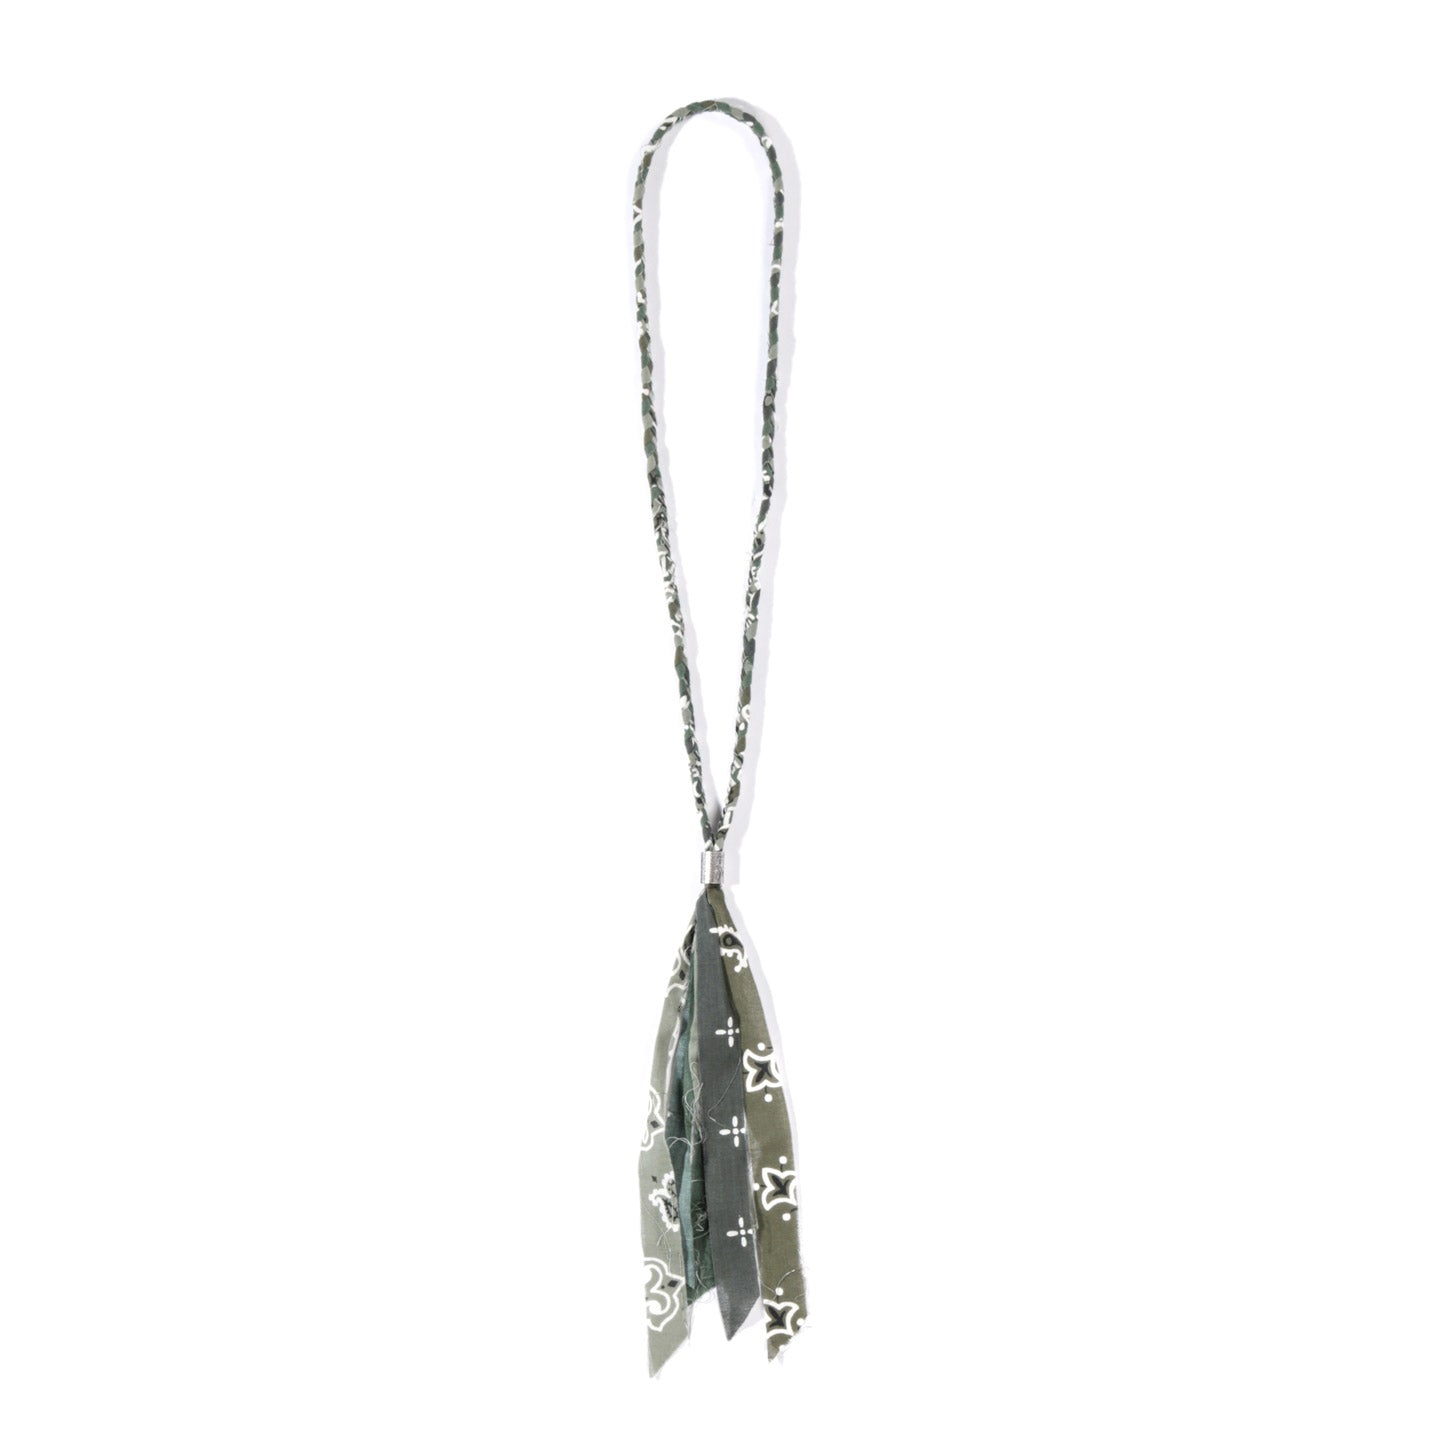 KAPITAL GAUZE BANDANA FRINGED NECKLACE KHAKI